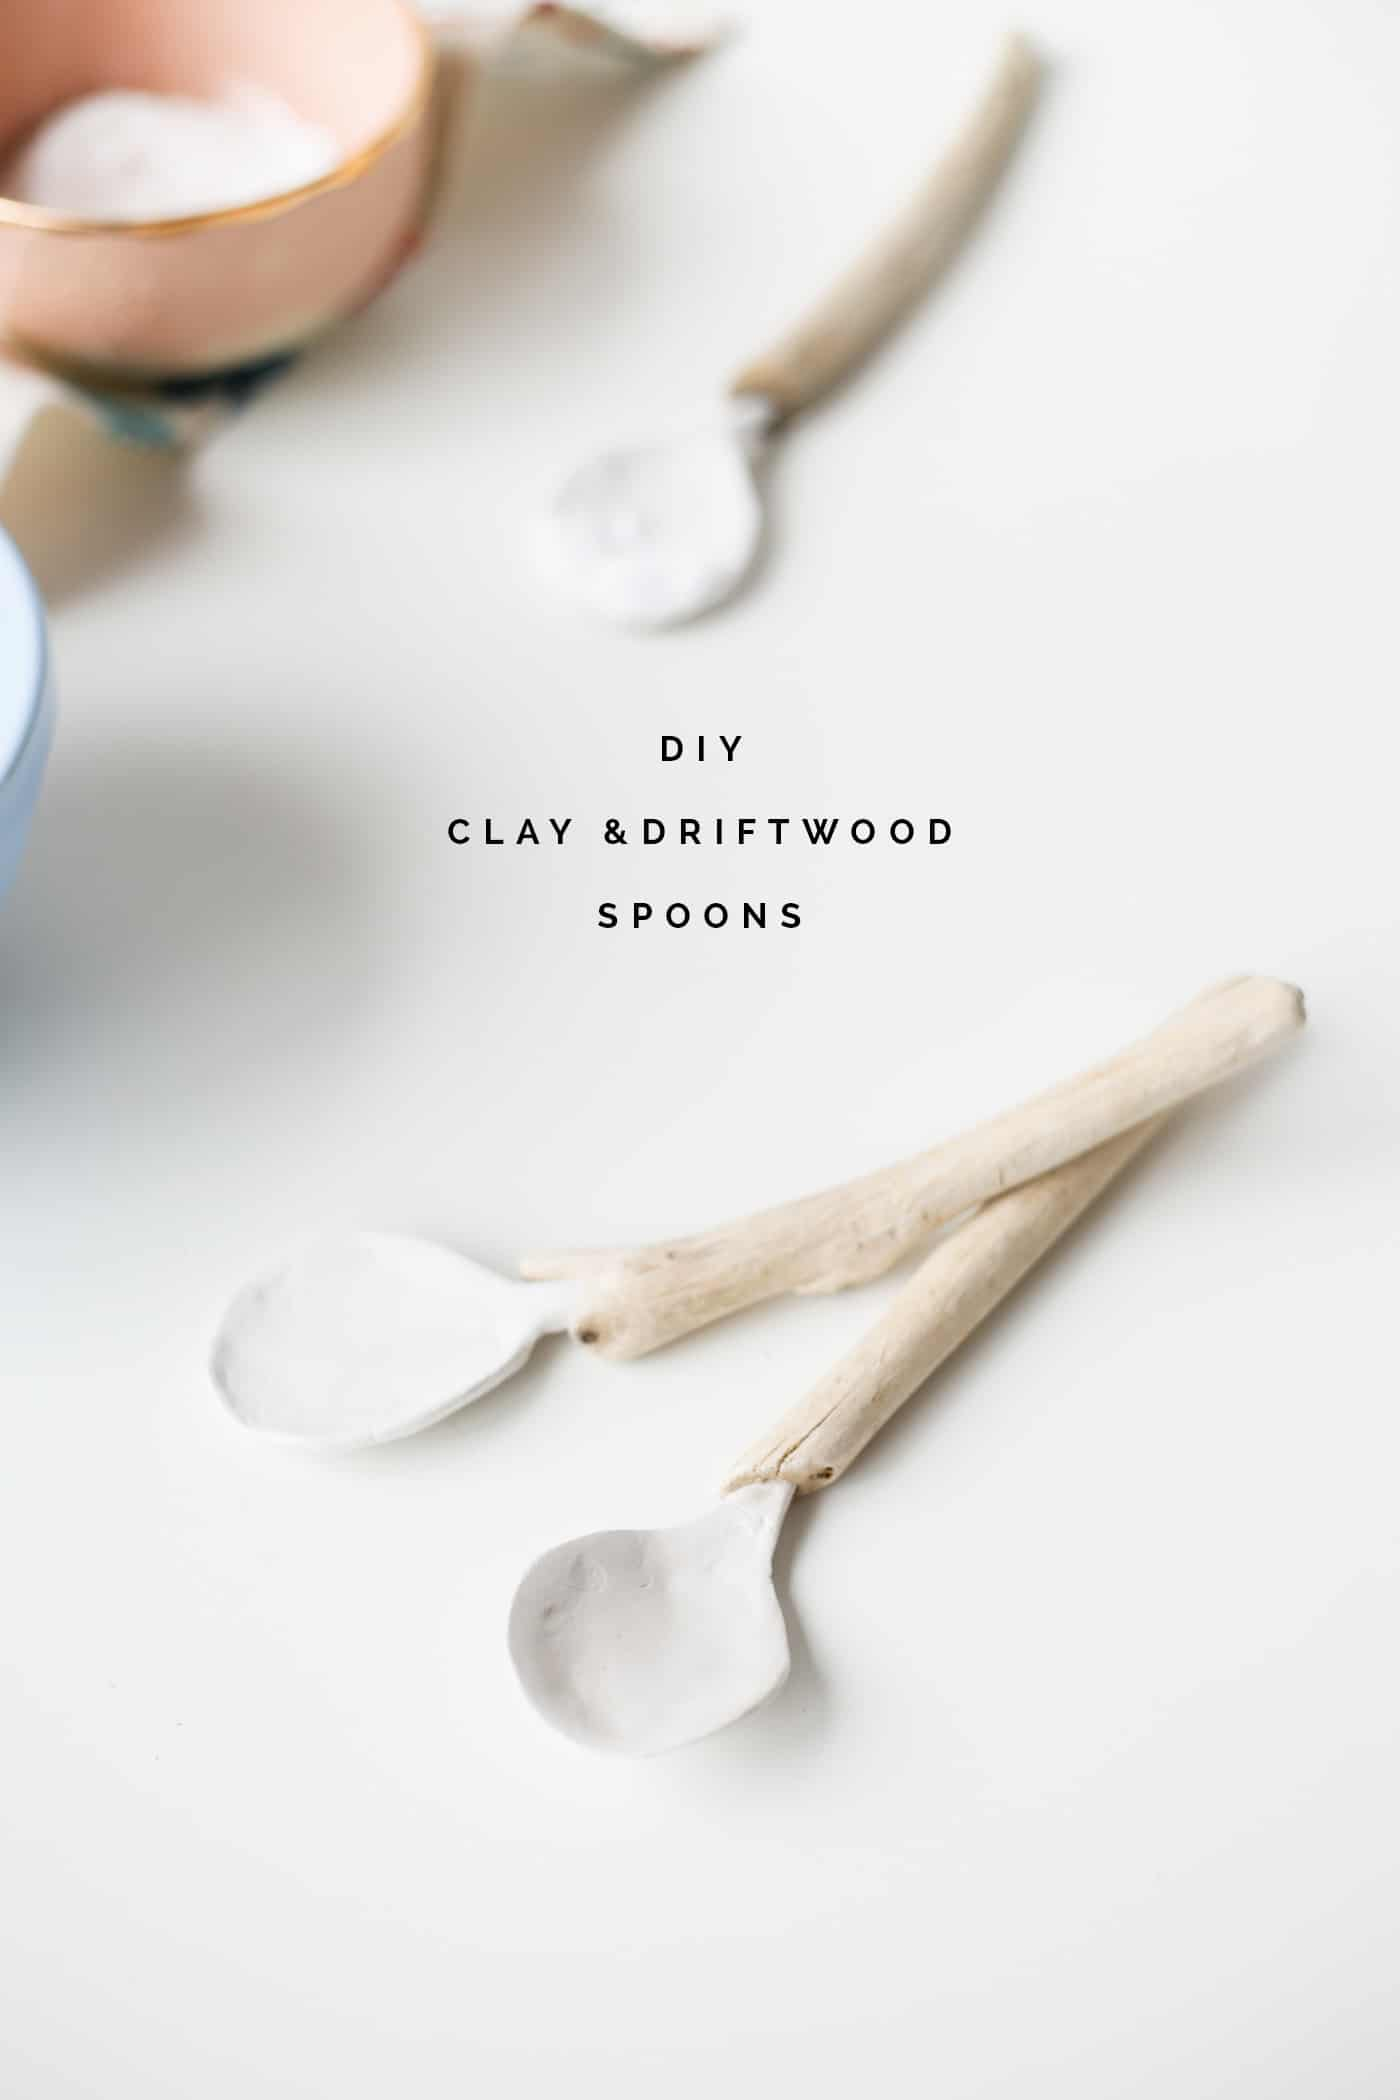 Clay and driftwood spoons